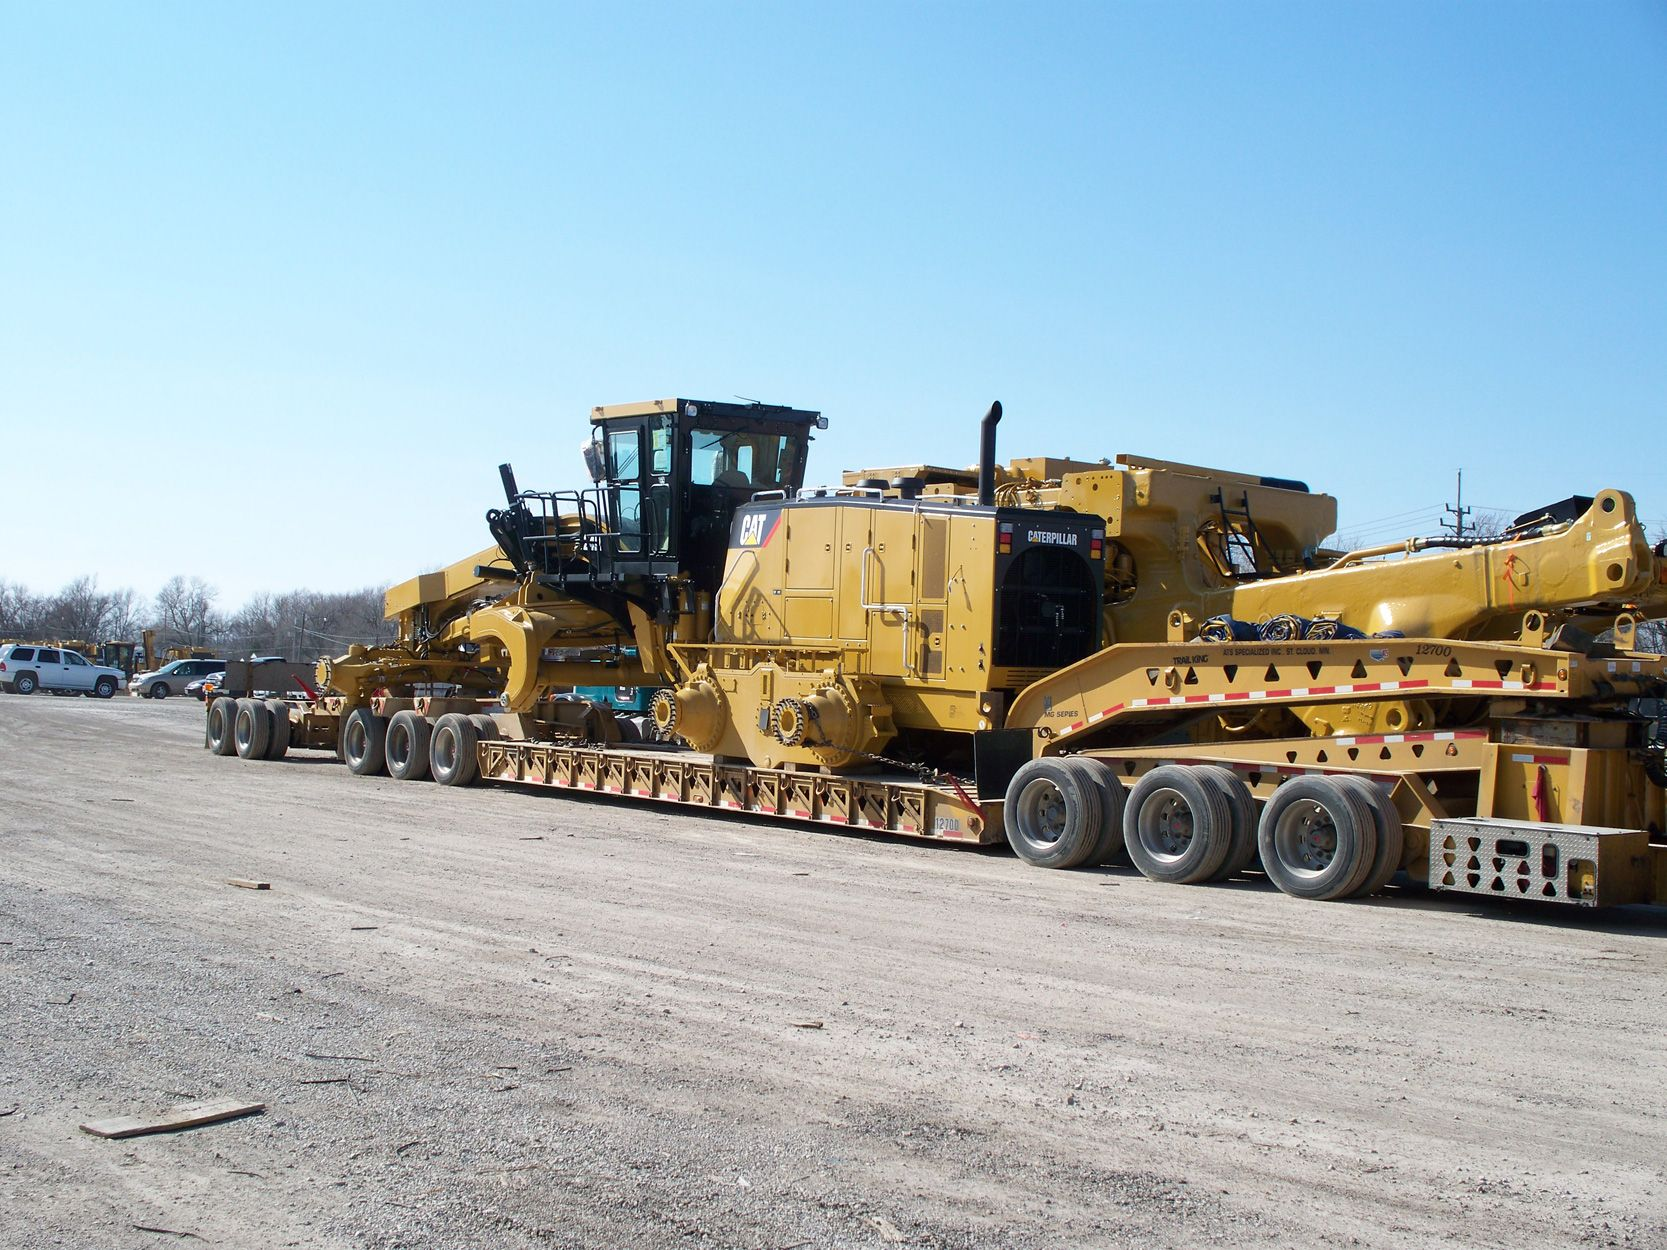 Looks Like A Cat 24m In The Foreground Less Its Tires And